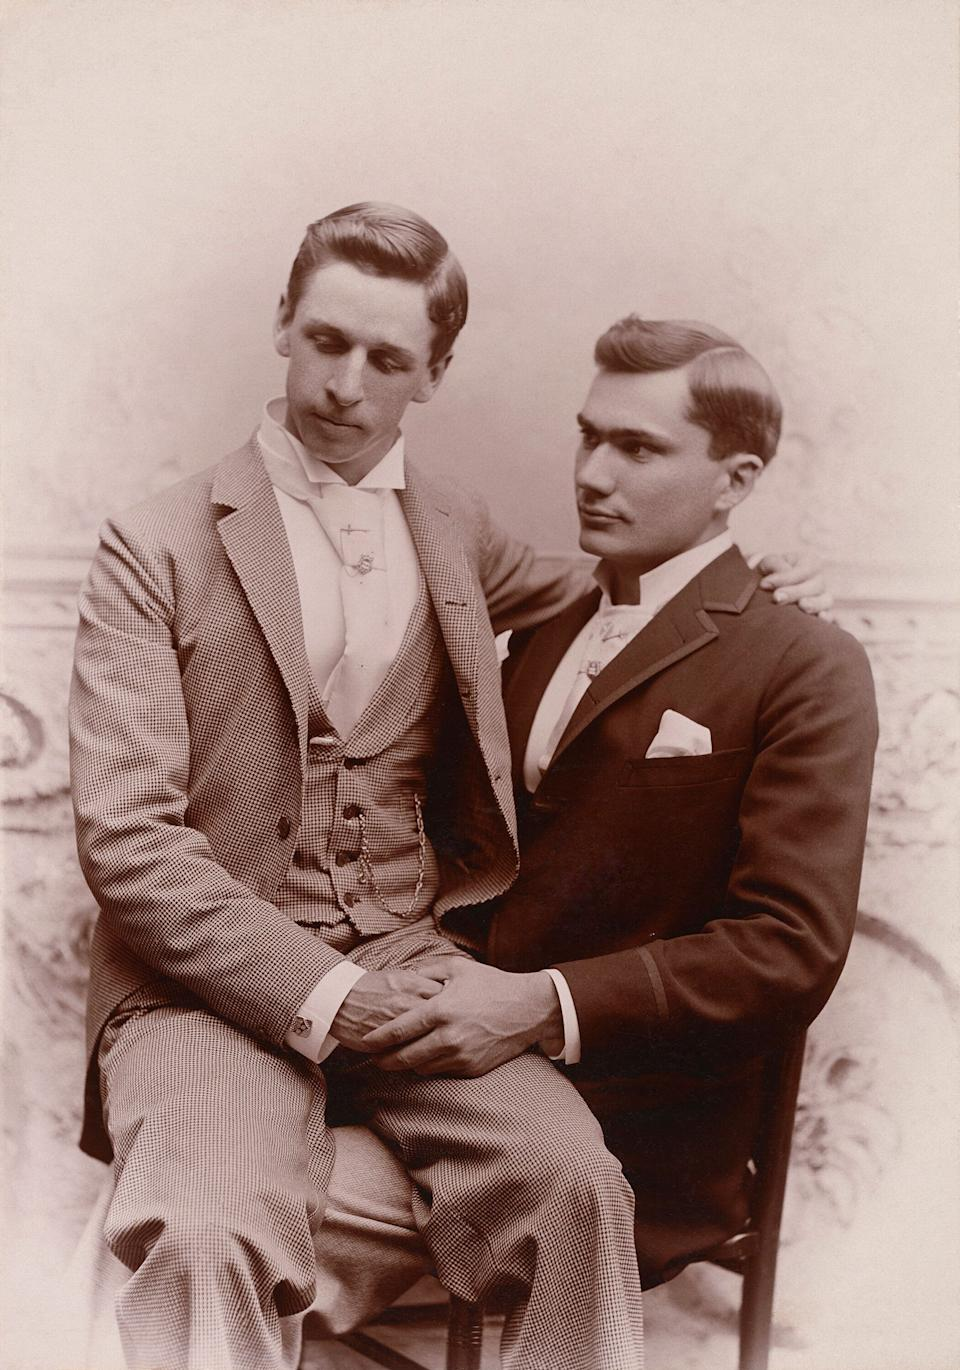 """Nini and Treadwell first purchased a photograph of two men in an intimate pose together, circa 1920, from a Texas antique shop in 2000. (Photo: Courtesy of the Nini-Treadwell Collection © """"Loving"""" by 5 Continents Editions)"""